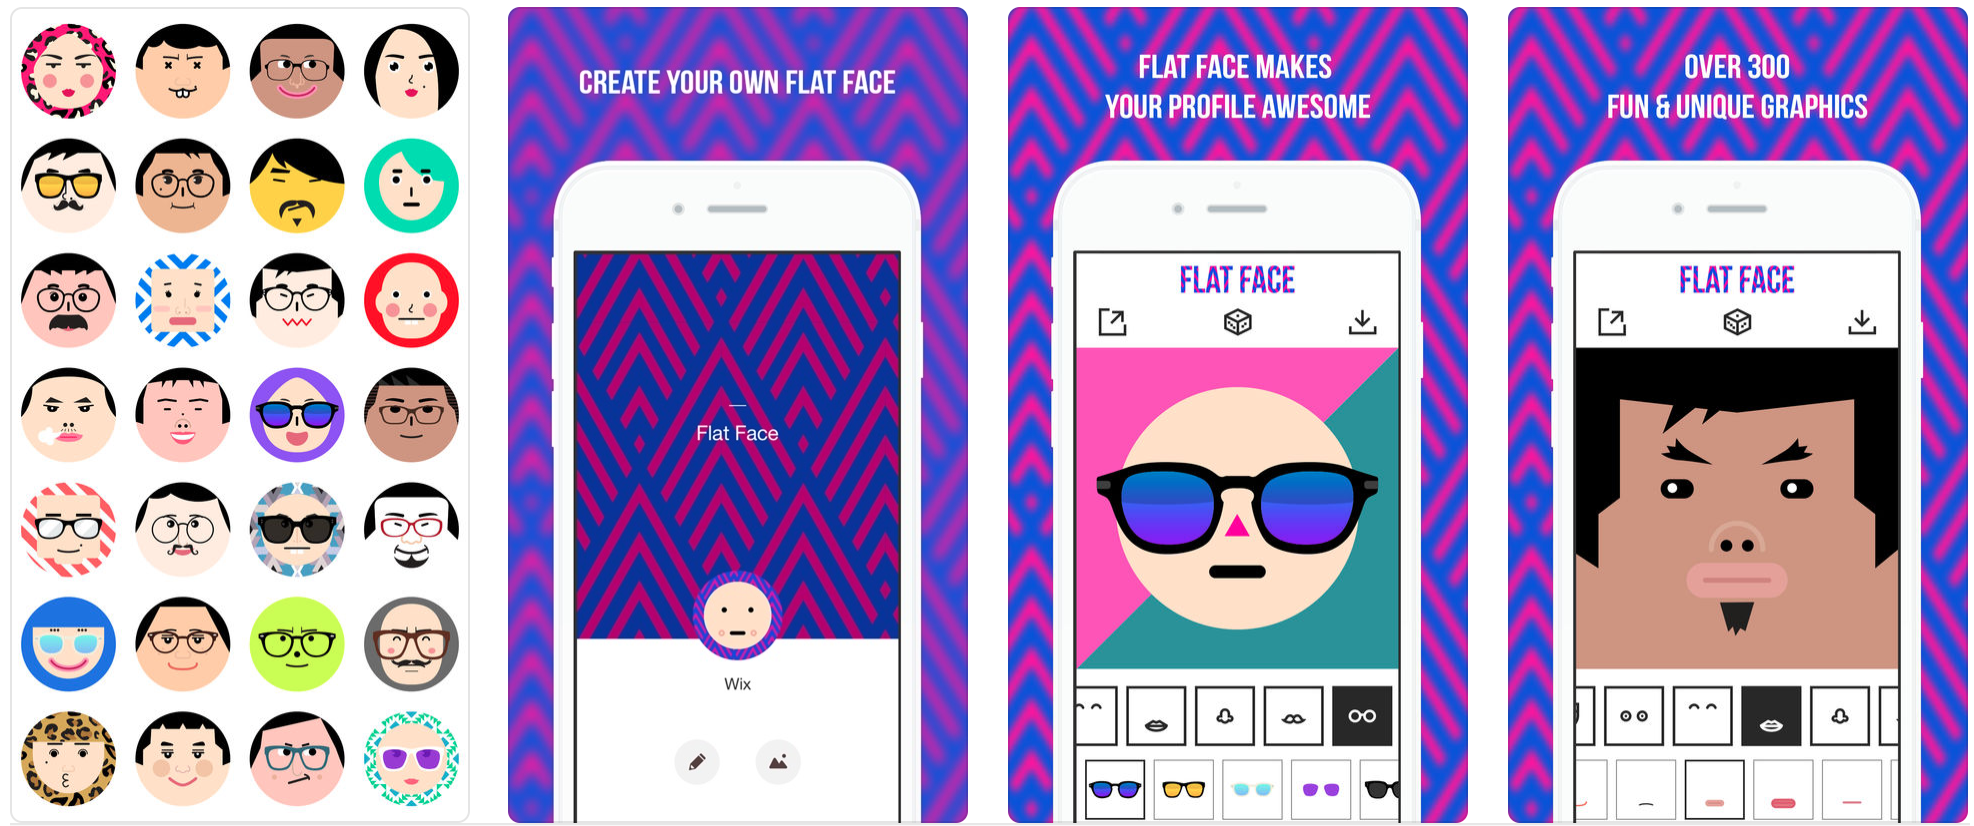 Flat Face - Avatar Face Maker2